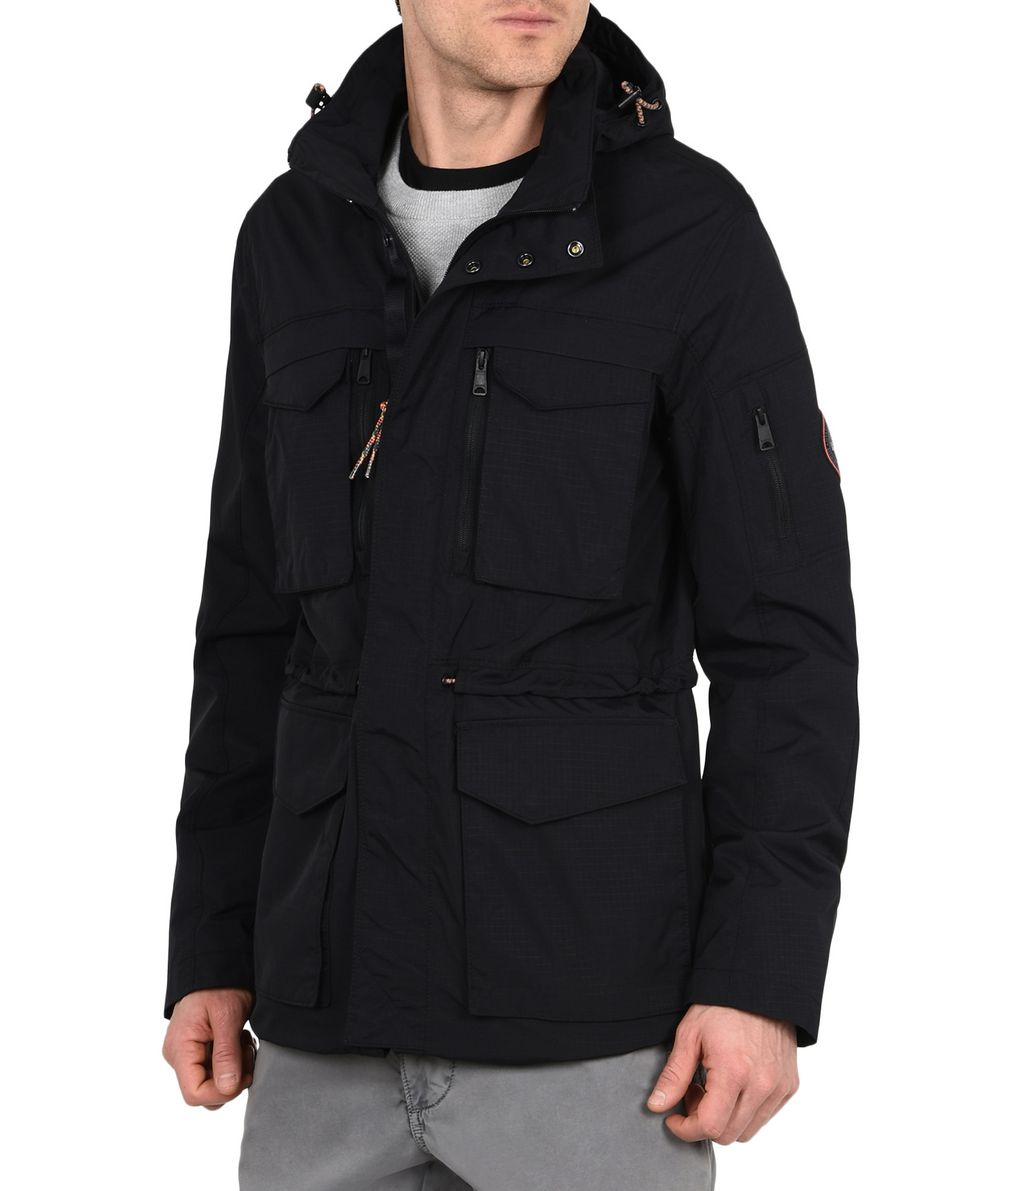 NAPAPIJRI AKLAVI 2IN1 MAN PARKA,BLACK